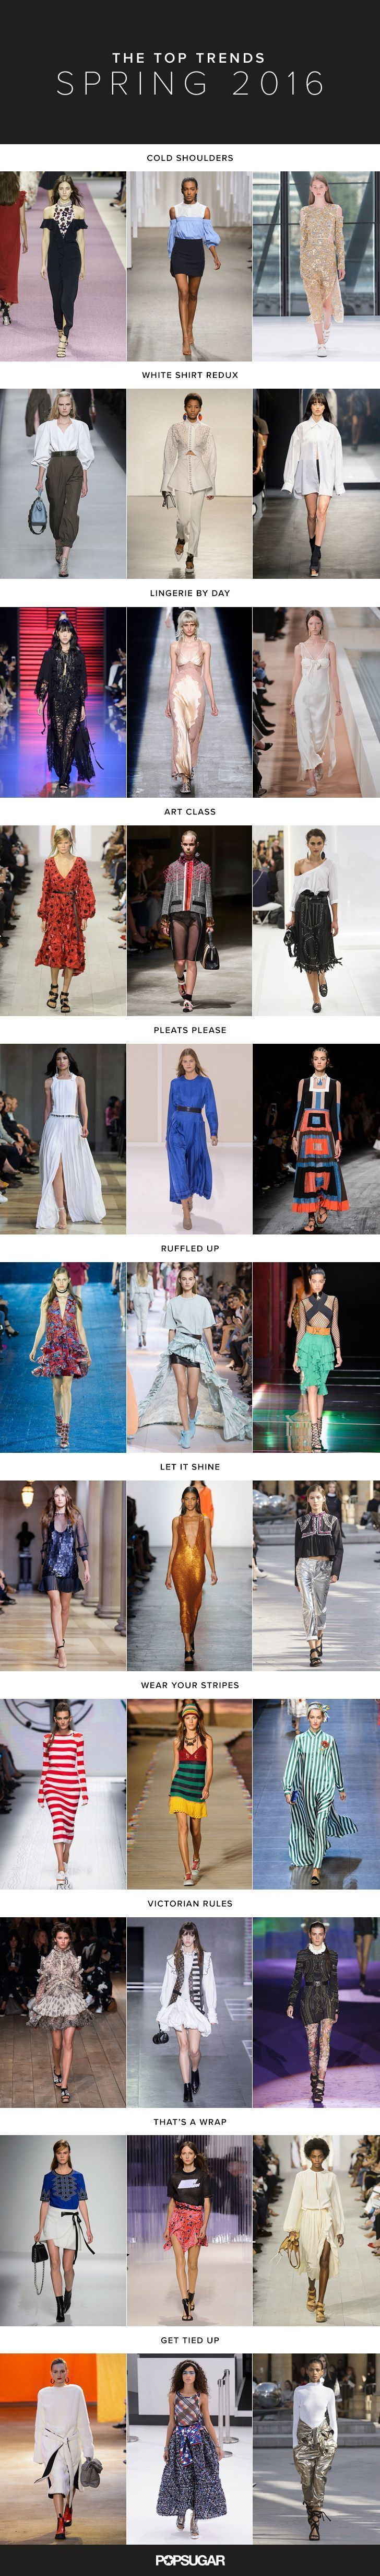 All the trends you need to know (and wear!) for Spring 2016.